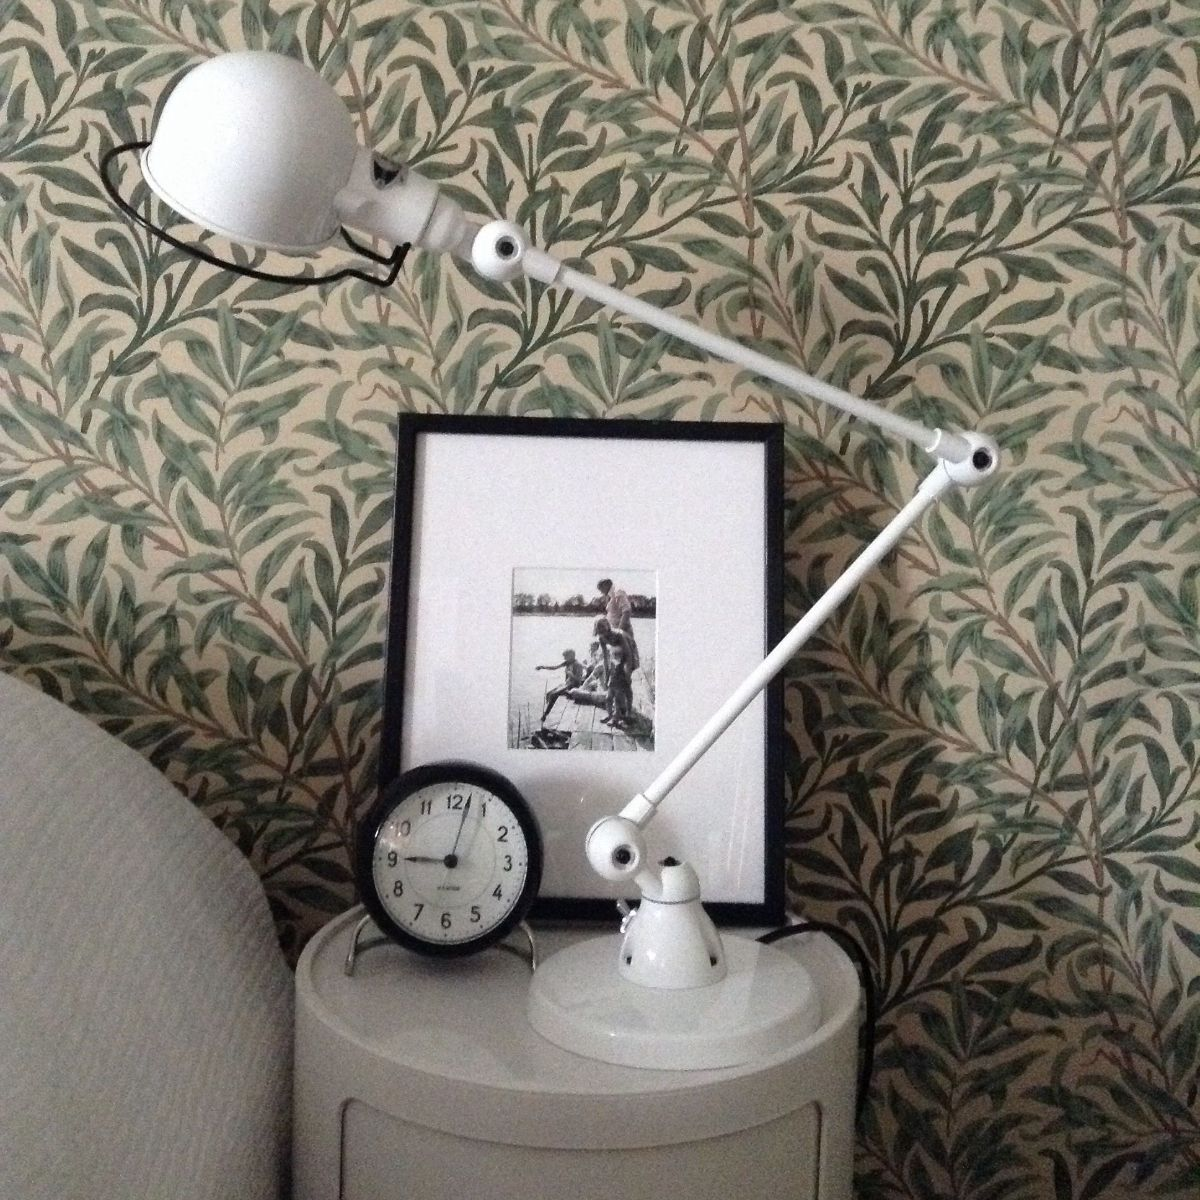 Lamp on bedside table with bold wallpaper